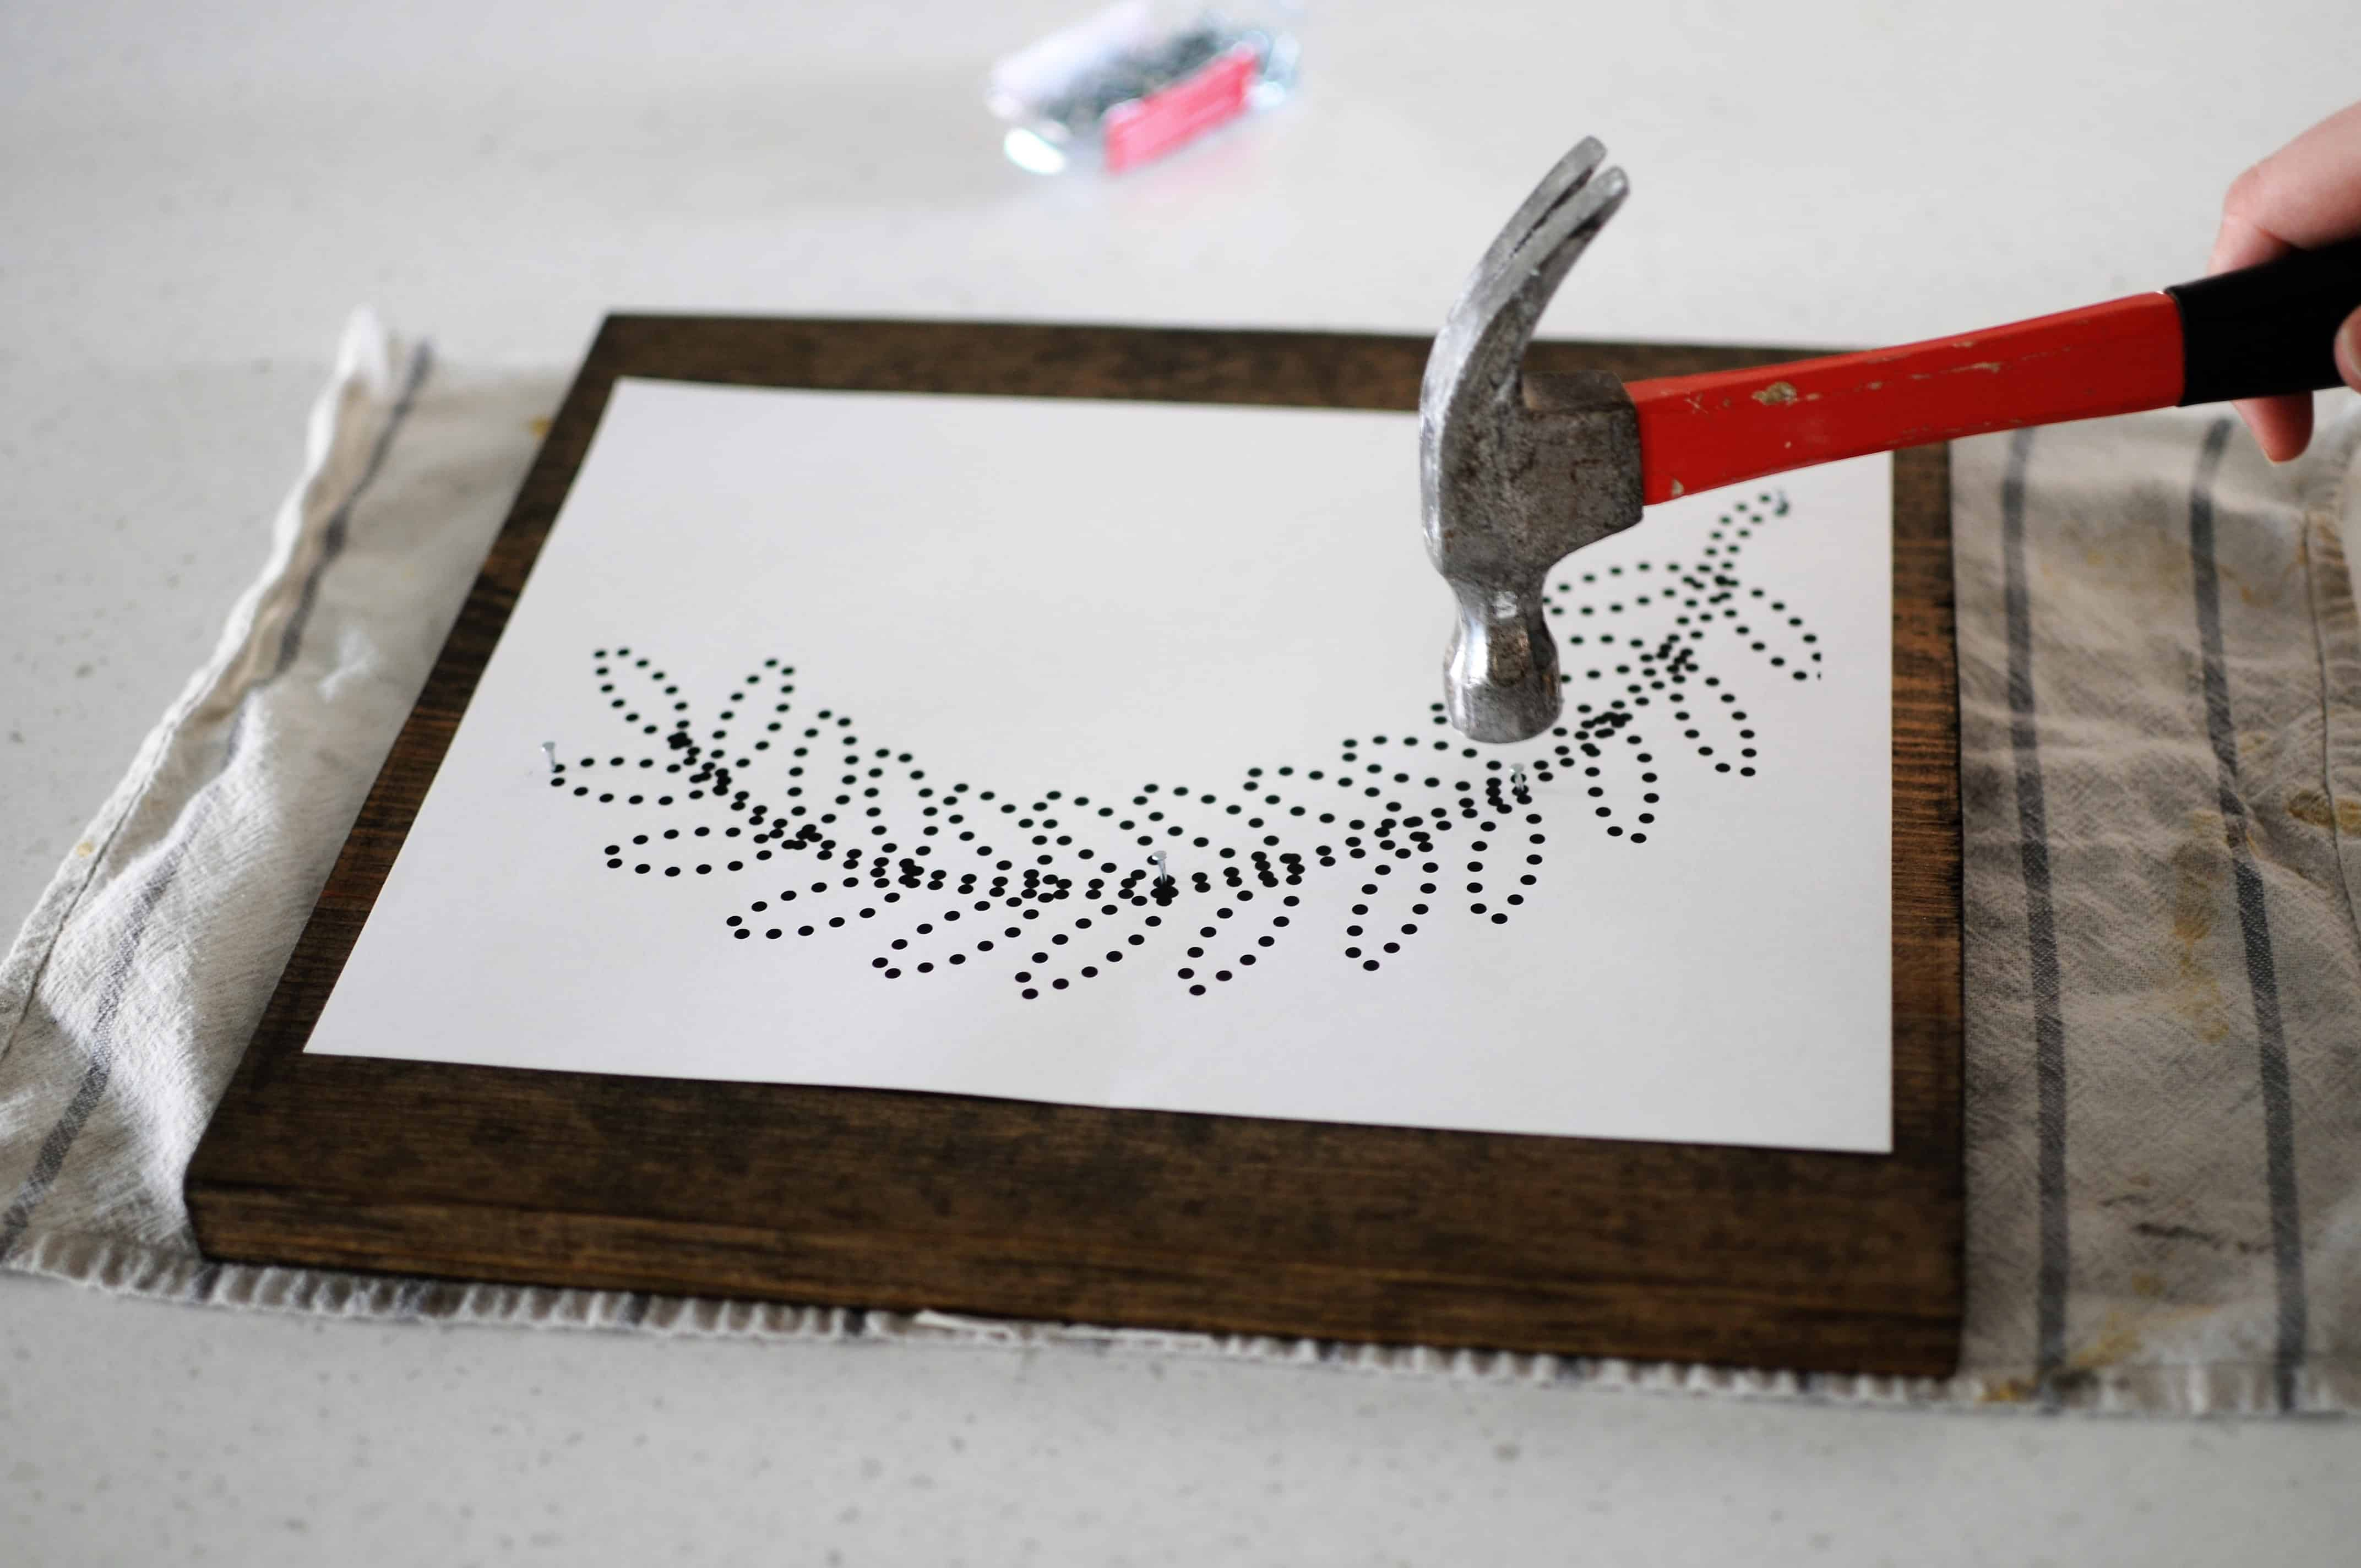 photograph relating to Free Printable String Art Patterns With Instructions known as Basic and Free of charge String Artwork Practices and Guidance! - Delighted